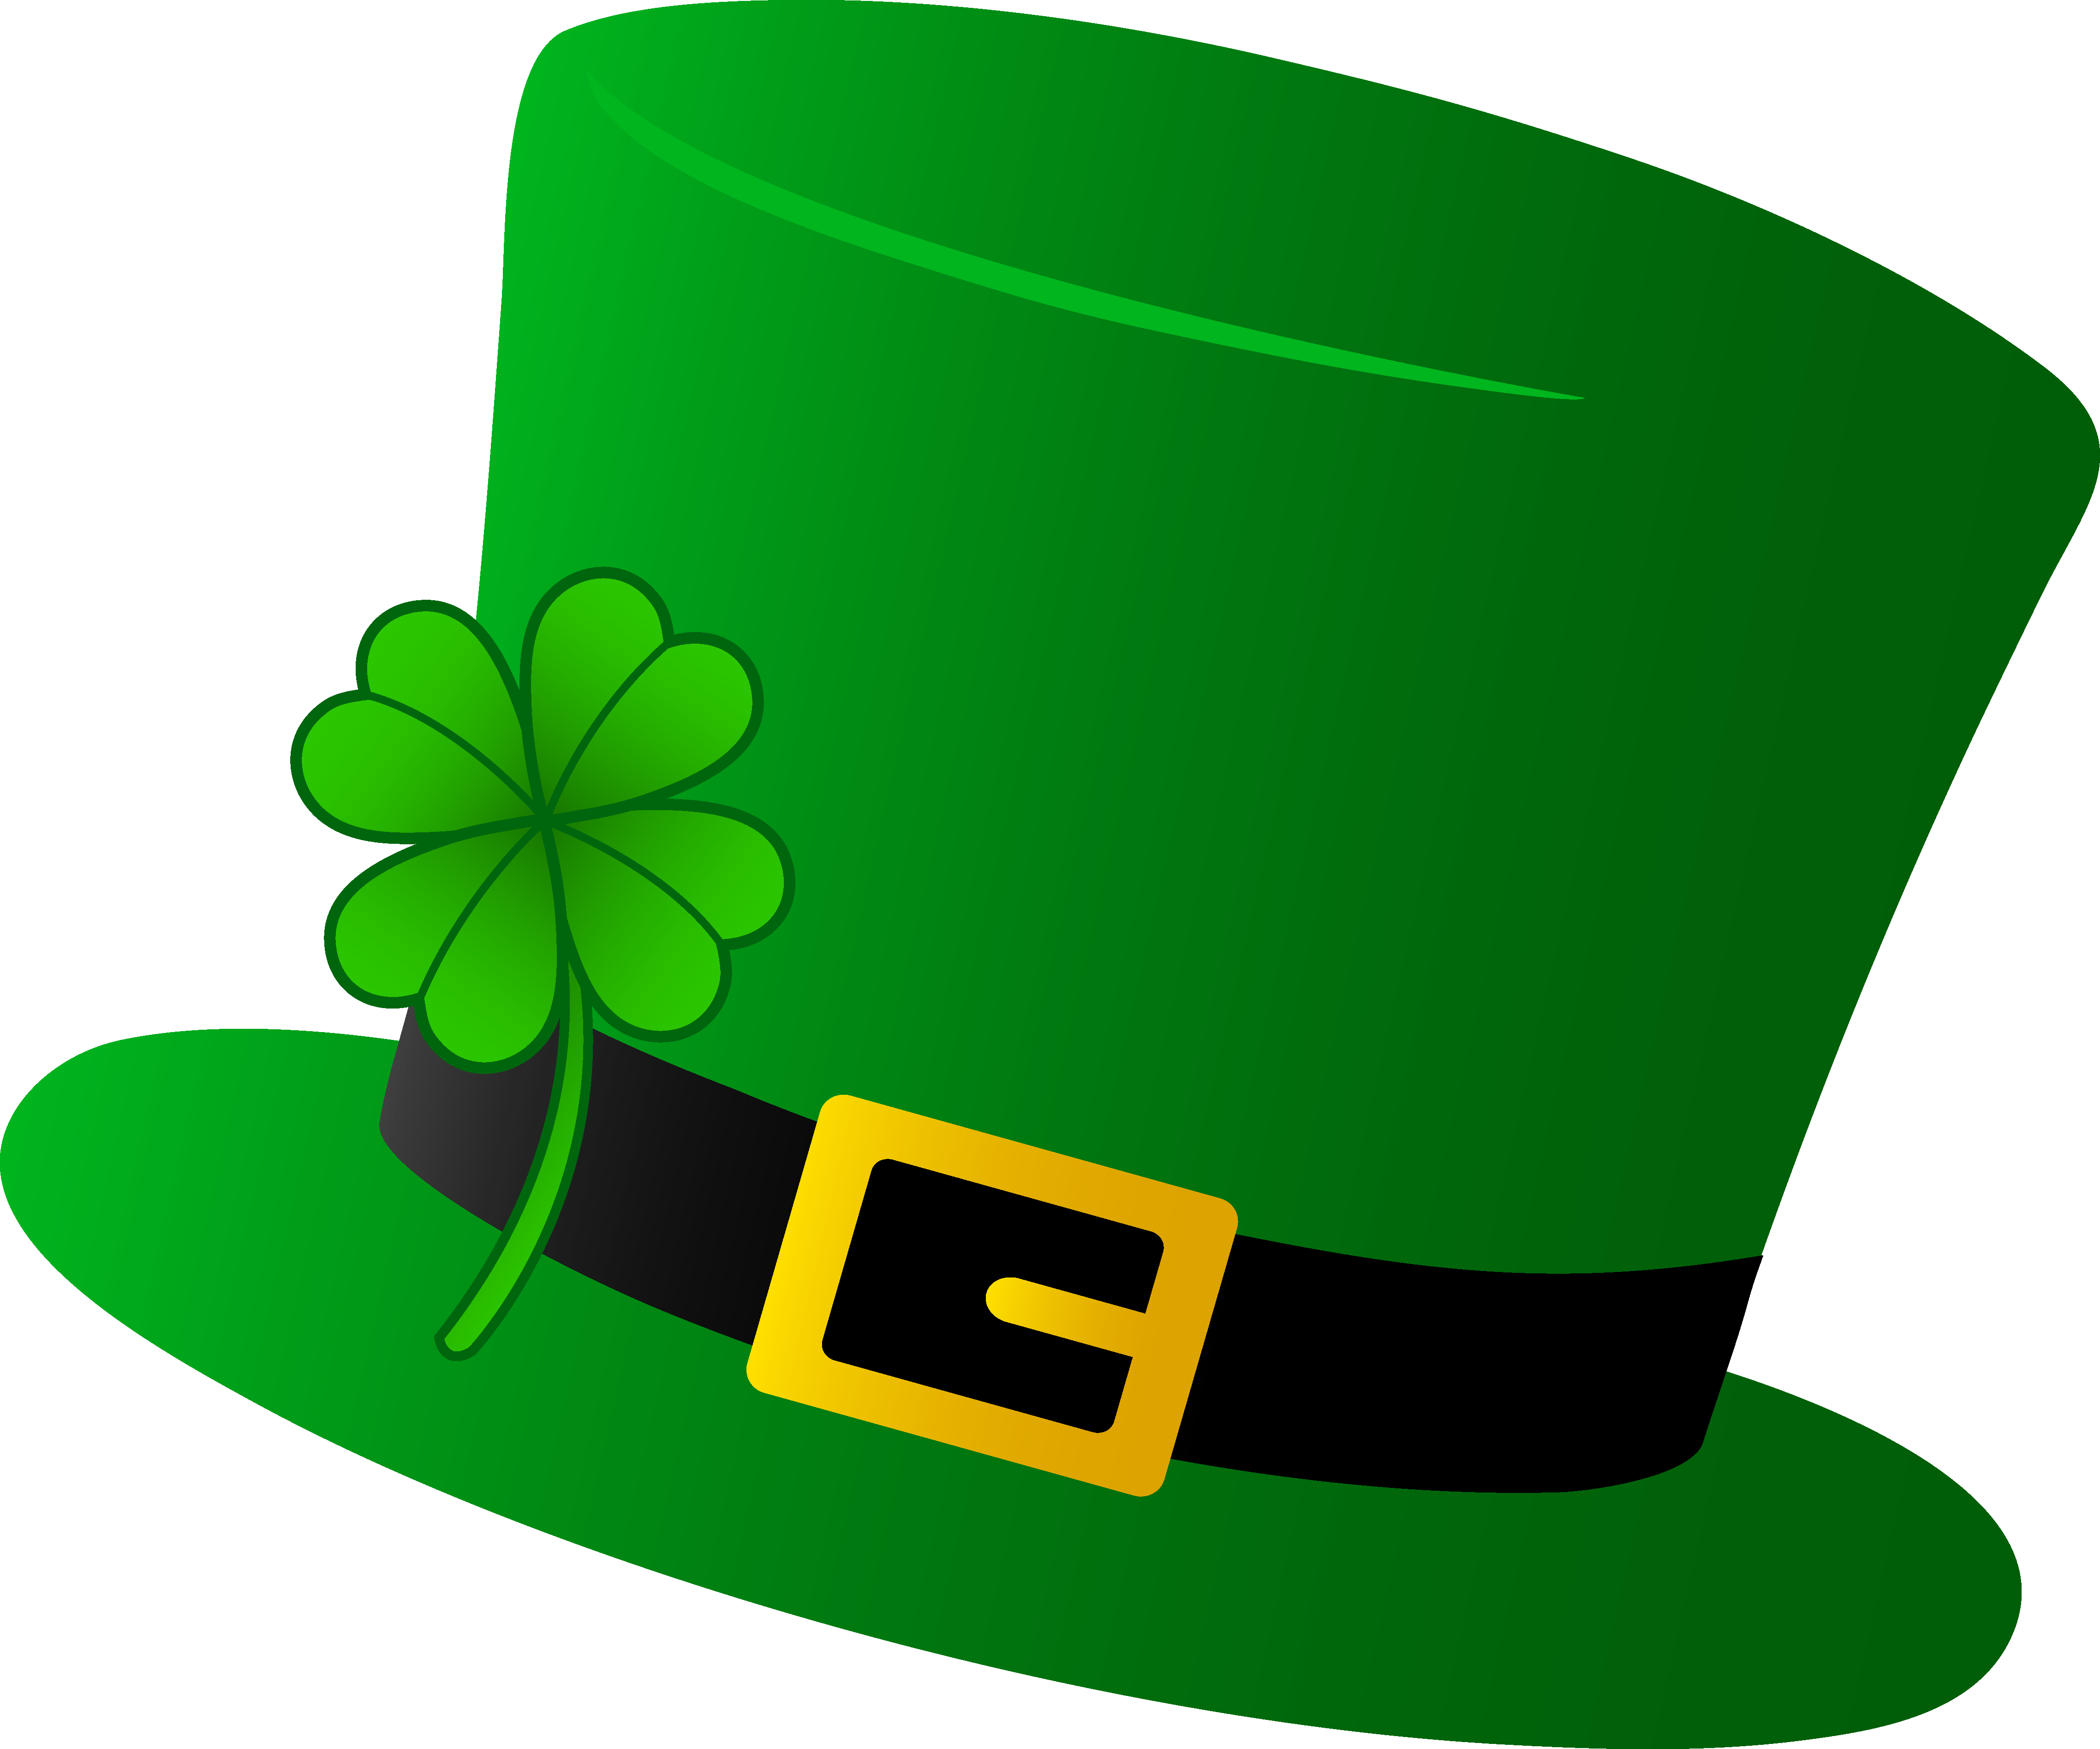 Leprechaun Clipart Black And White | Clipart library - Free Clipart